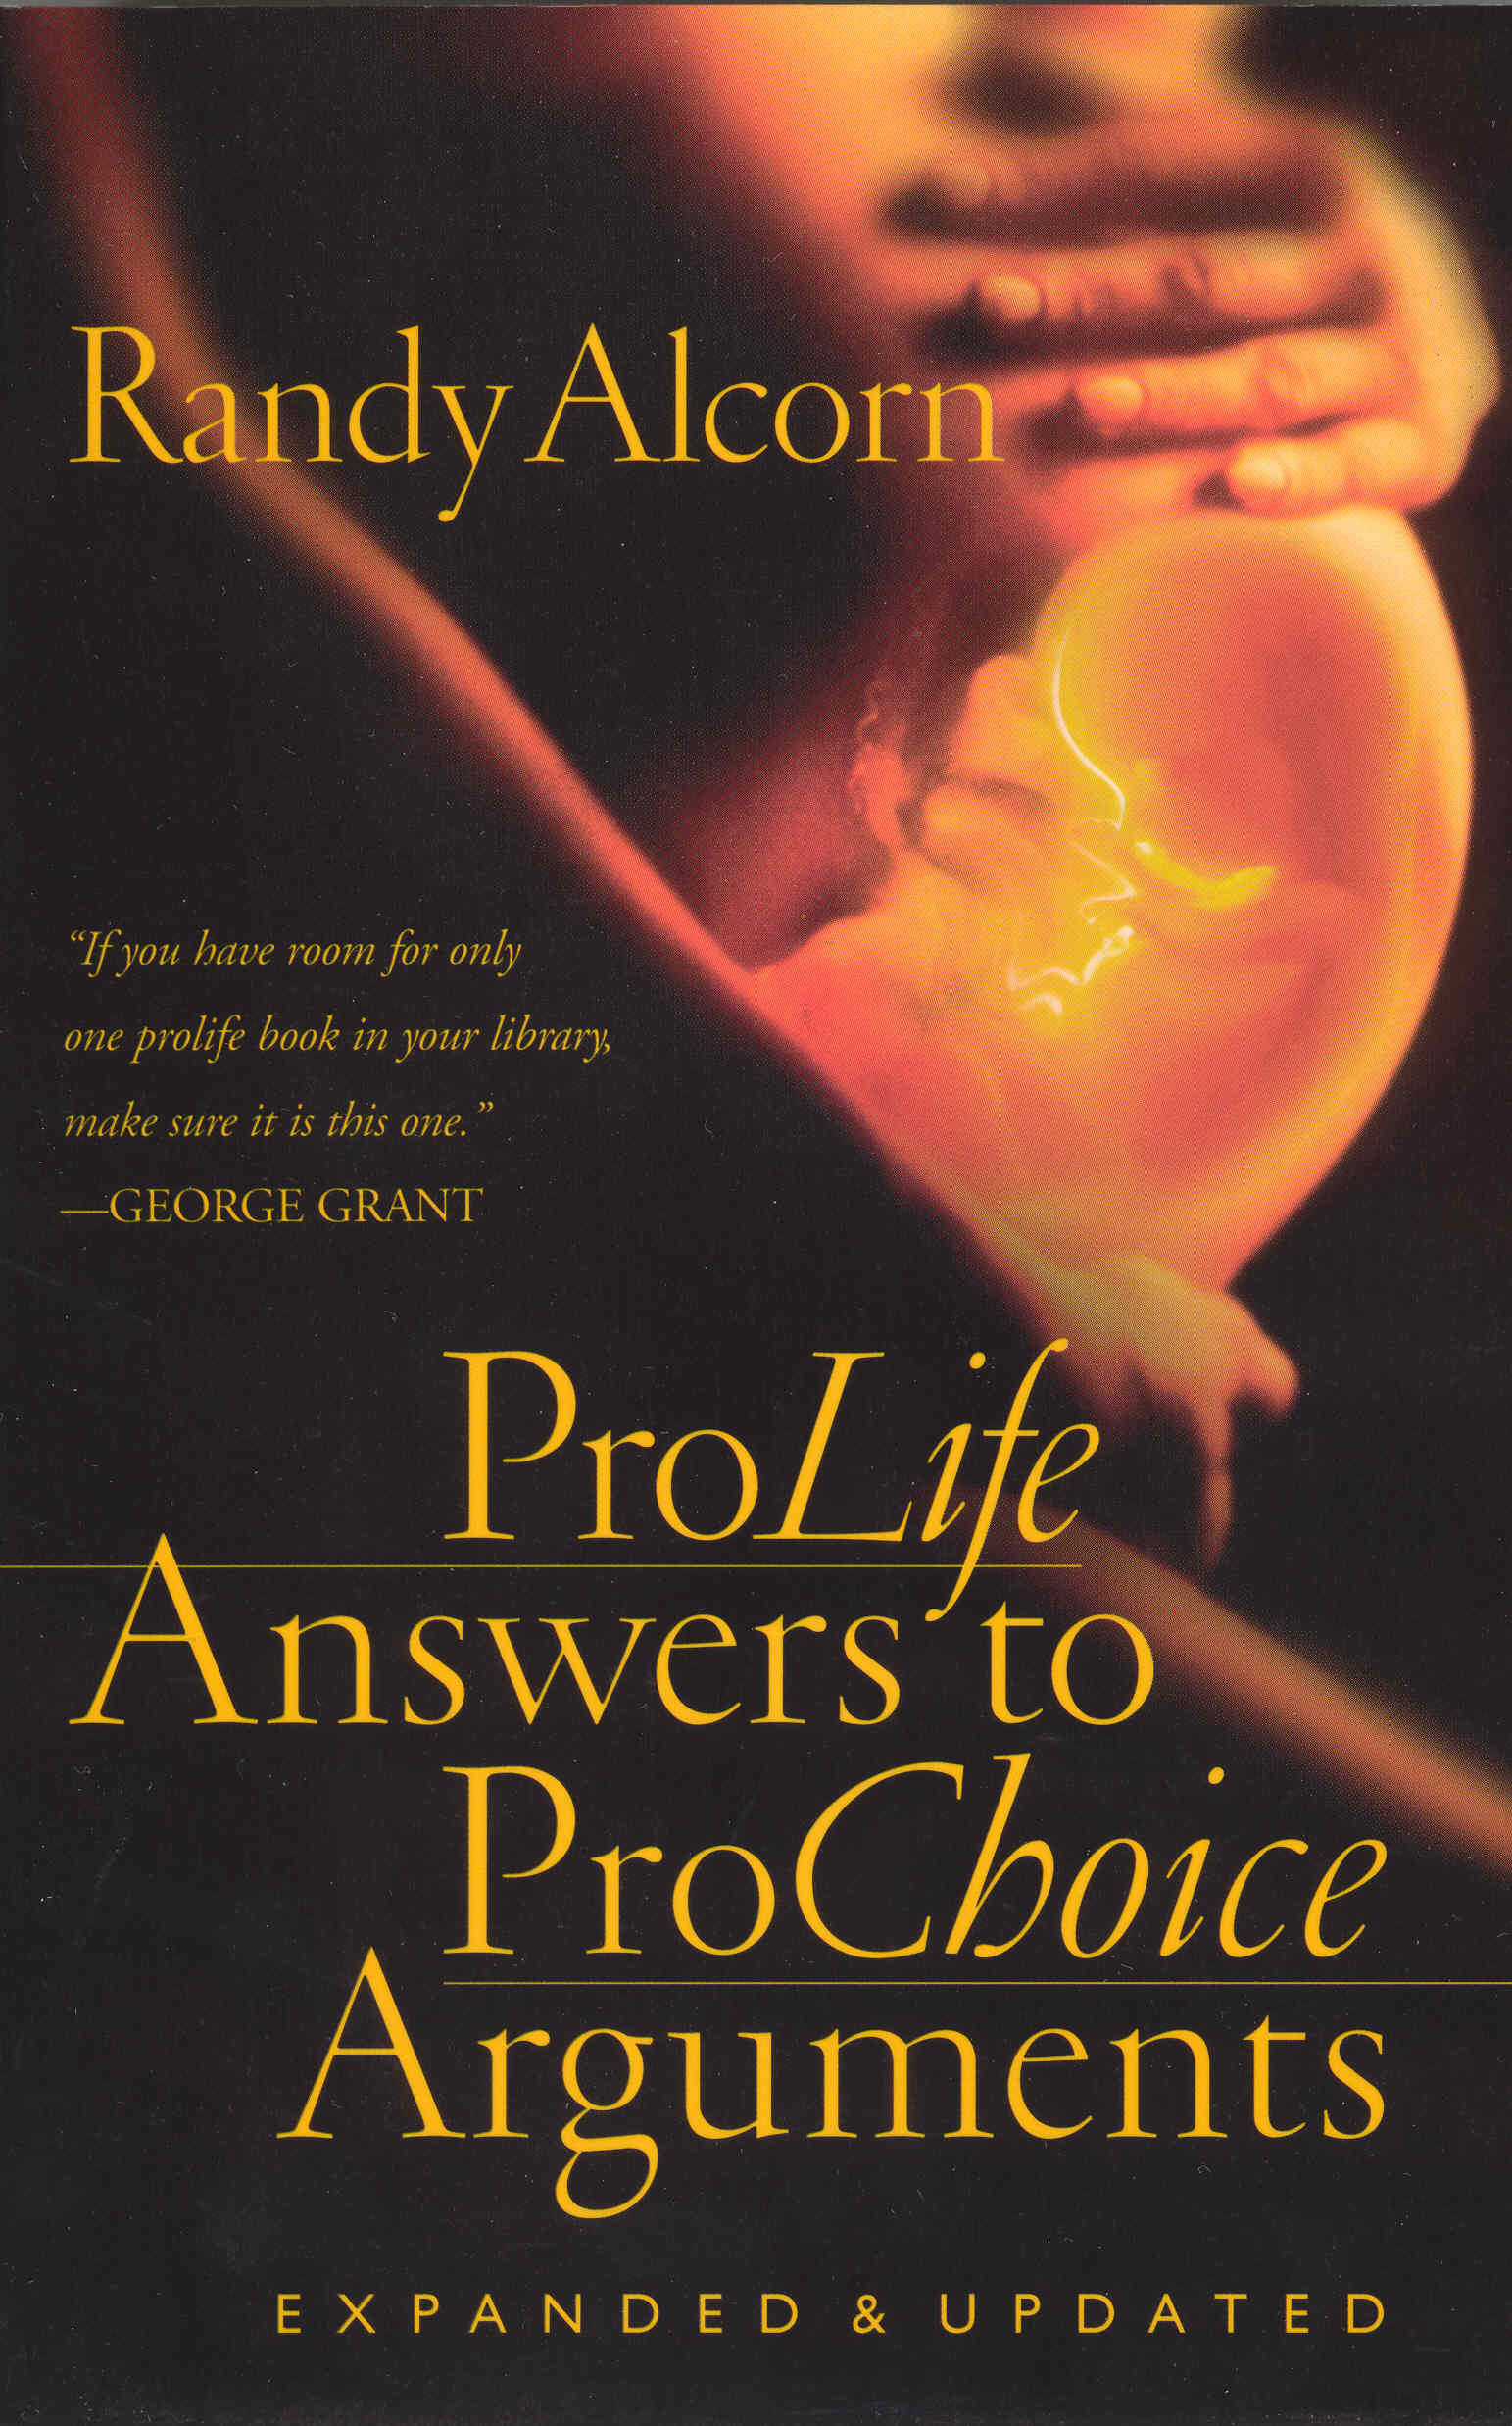 prolife answers to prochoice arguments introduction resources prolife answers to prochoice arguments